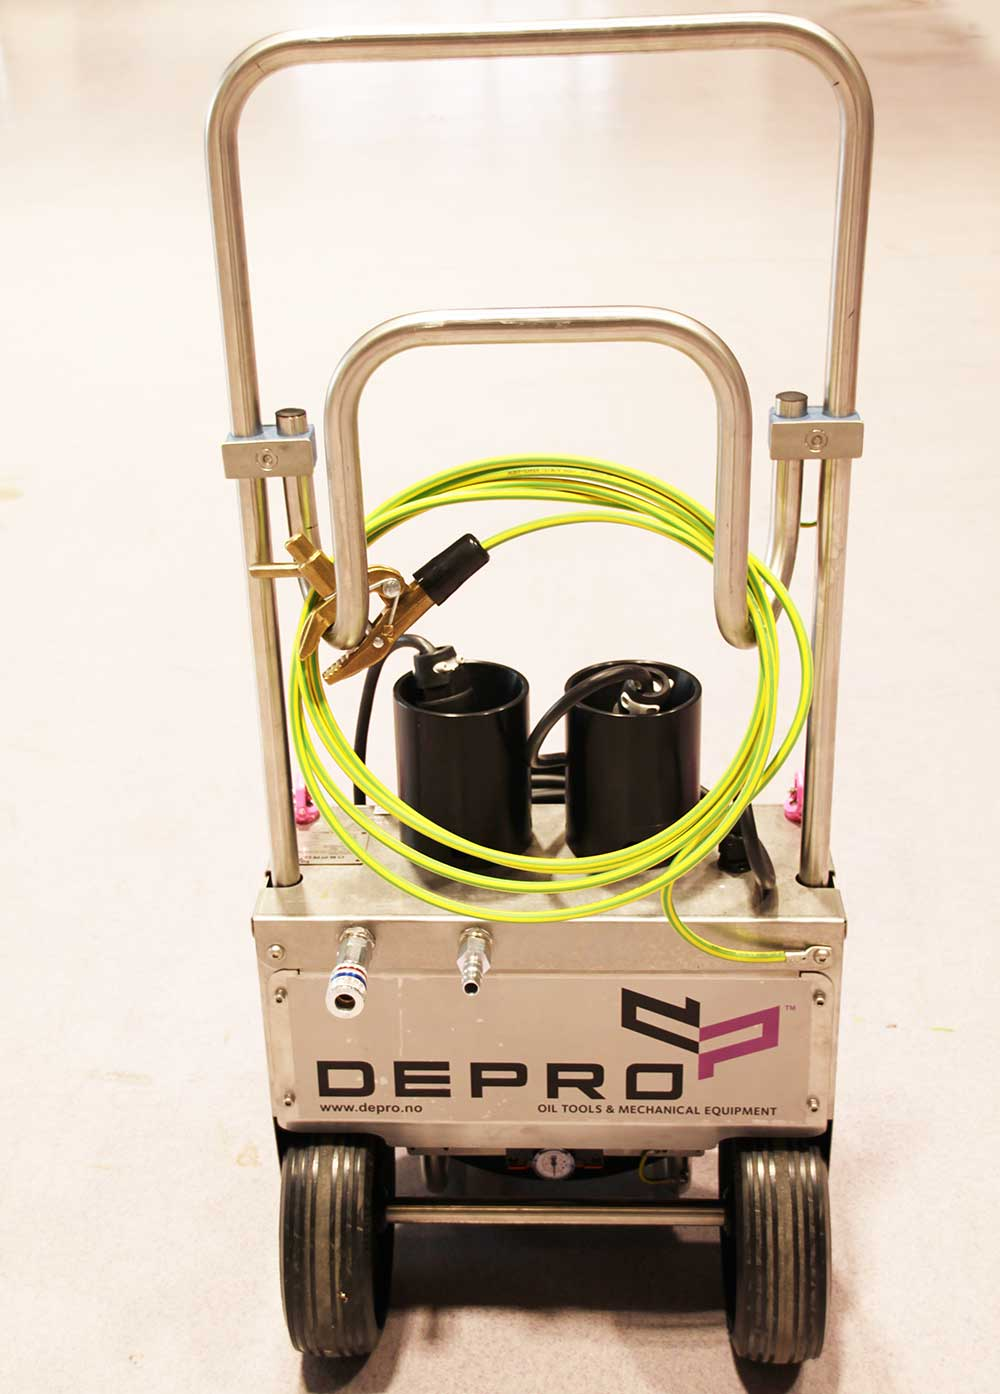 Image of a pneumatic shut down unit from Depro AS.